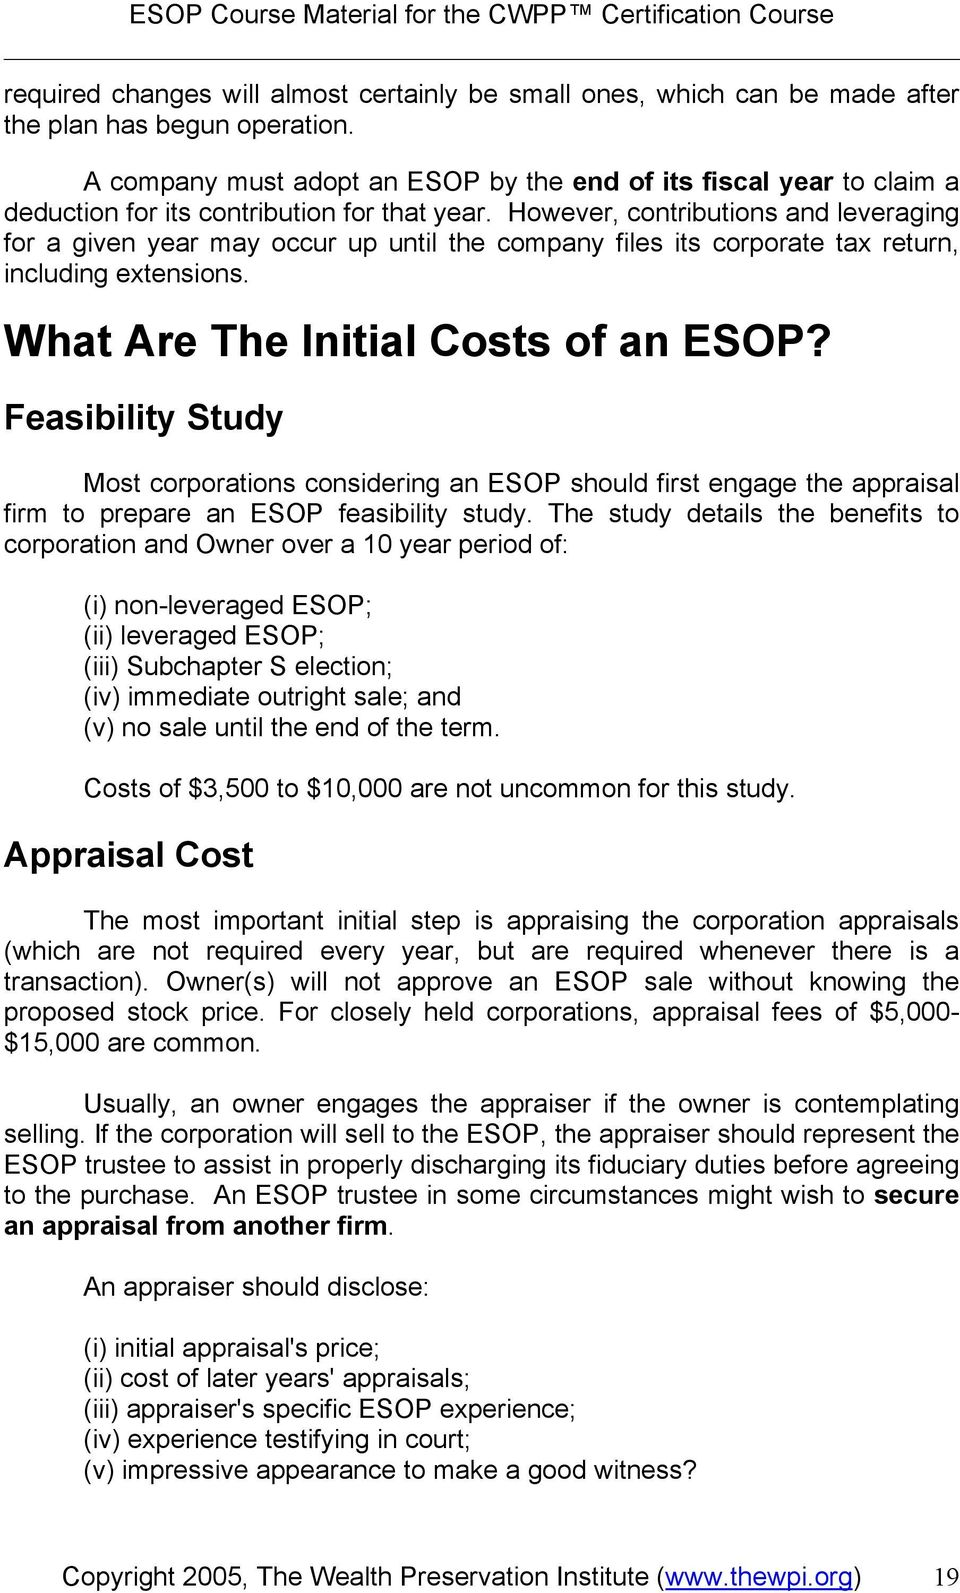 However, contributions and leveraging for a given year may occur up until the company files its corporate tax return, including extensions. What Are The Initial Costs of an ESOP?